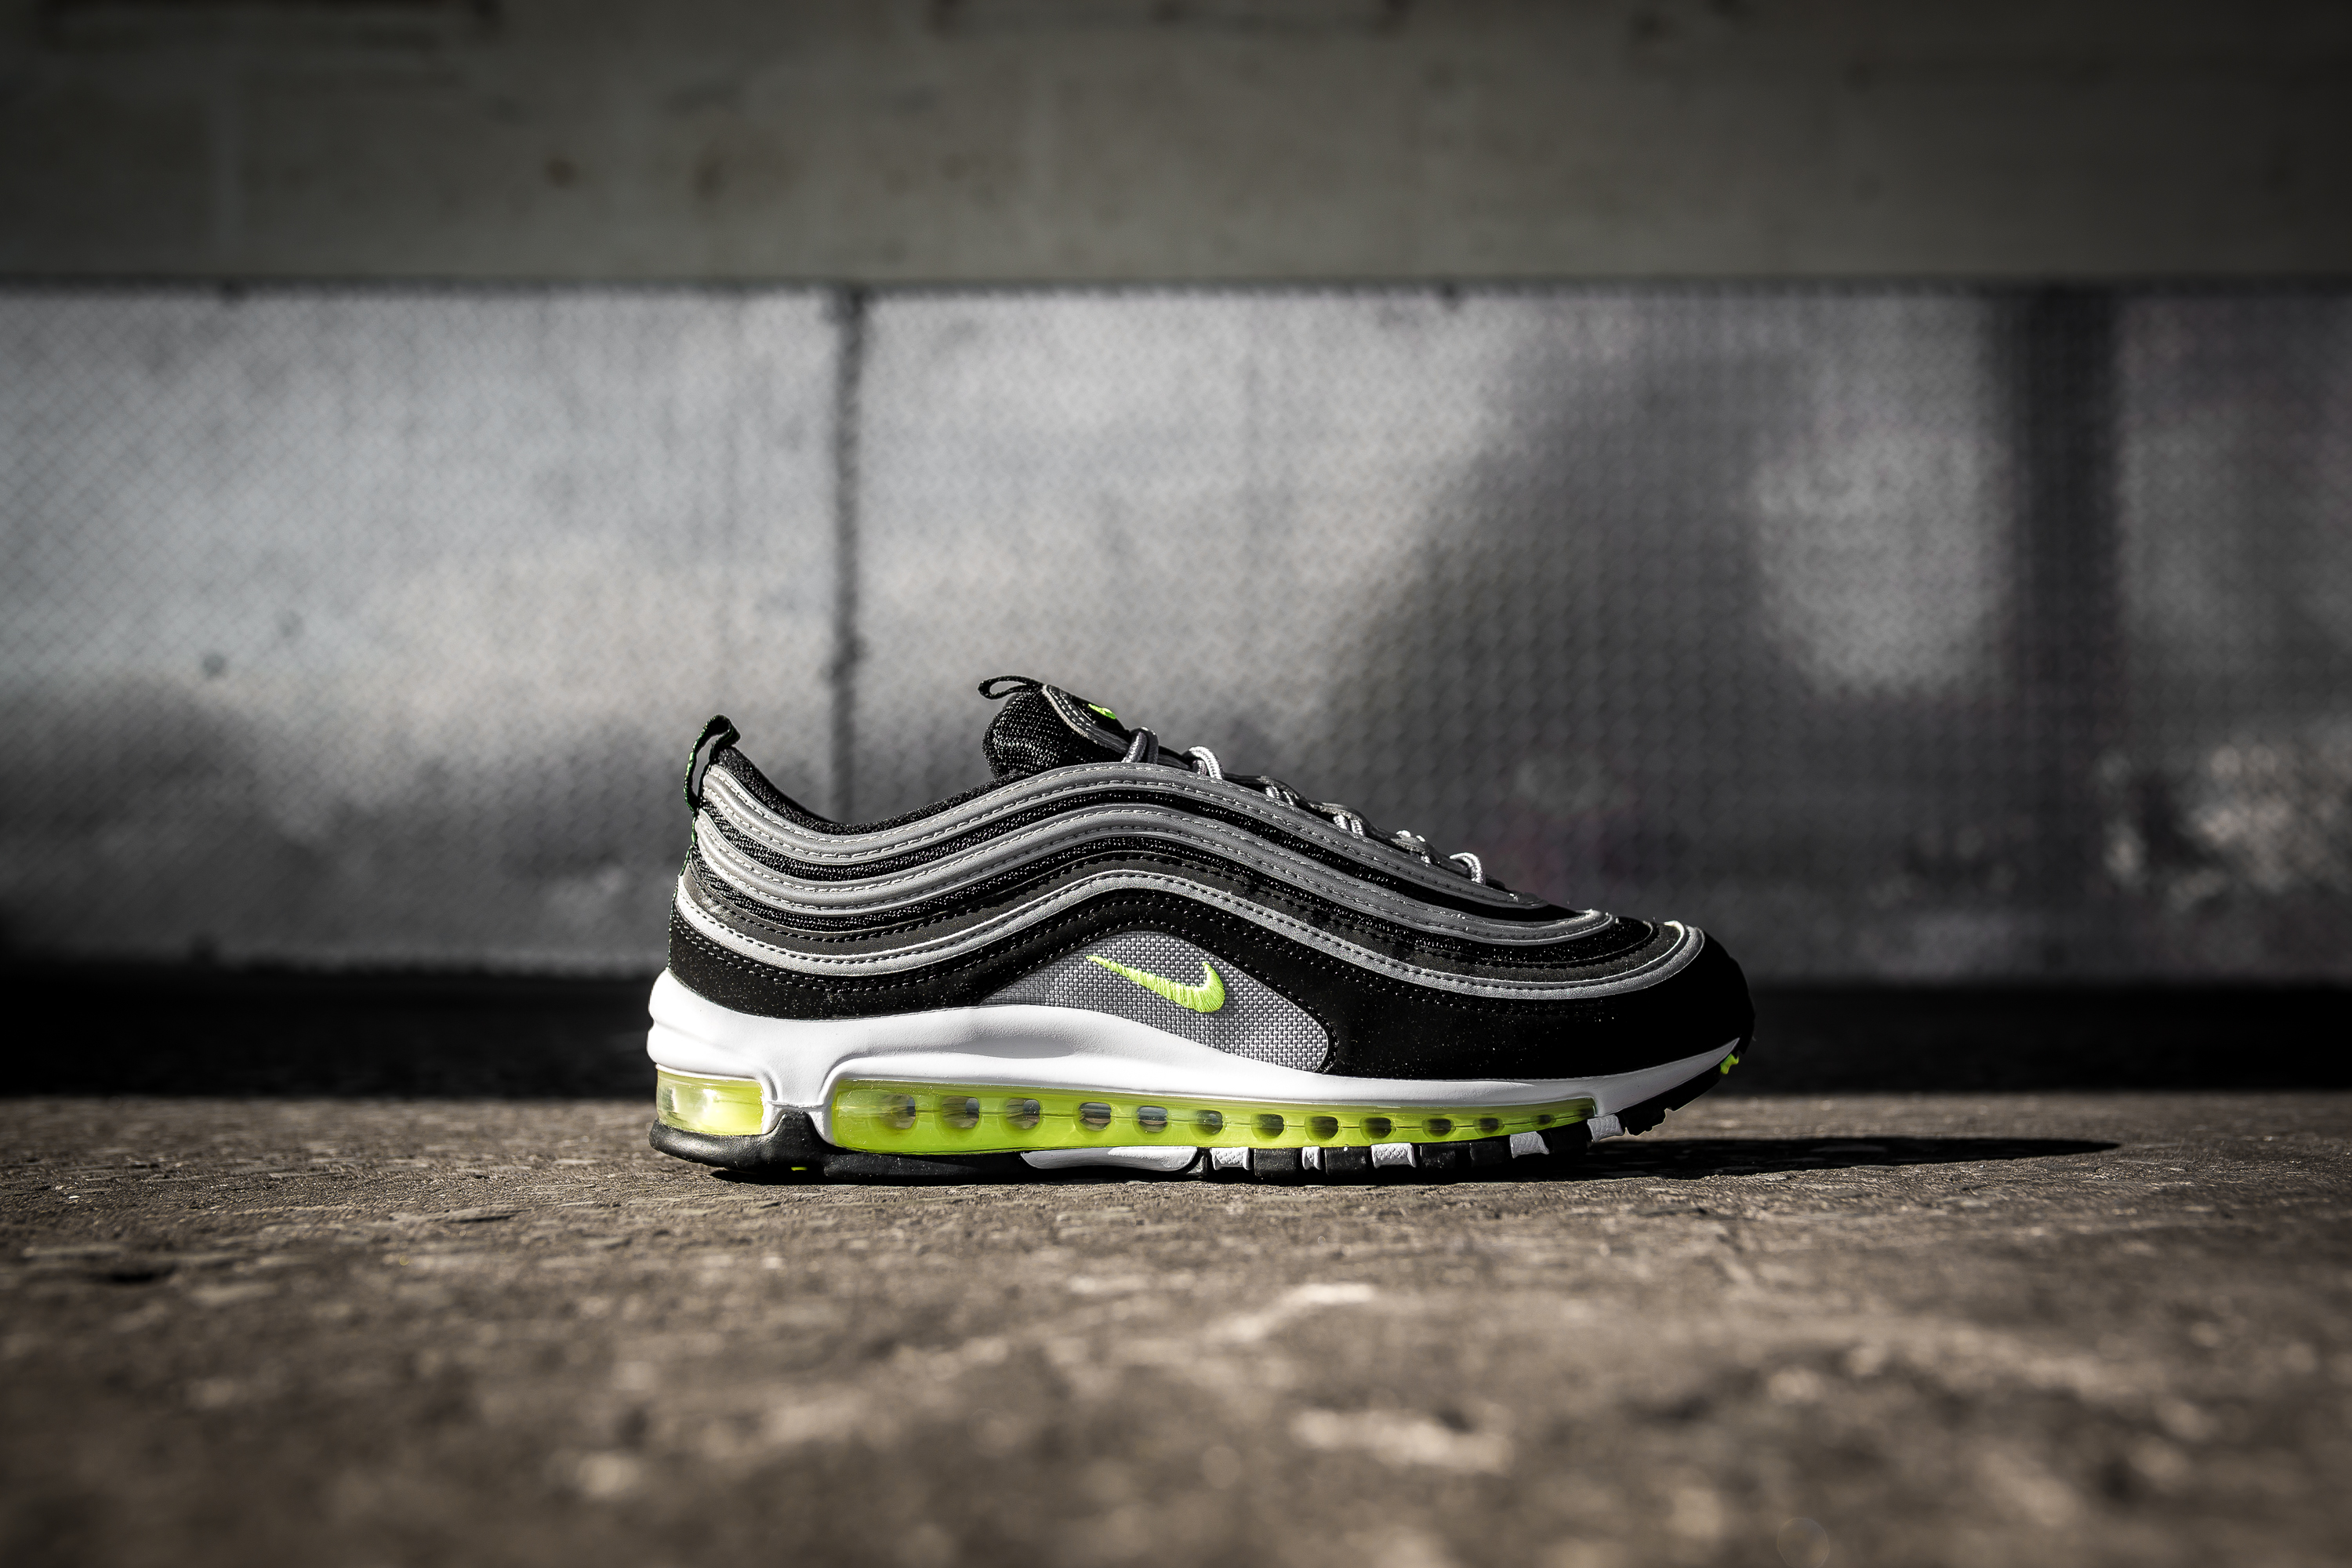 Cheap Nike air max 97 silver price Birchstone Moore